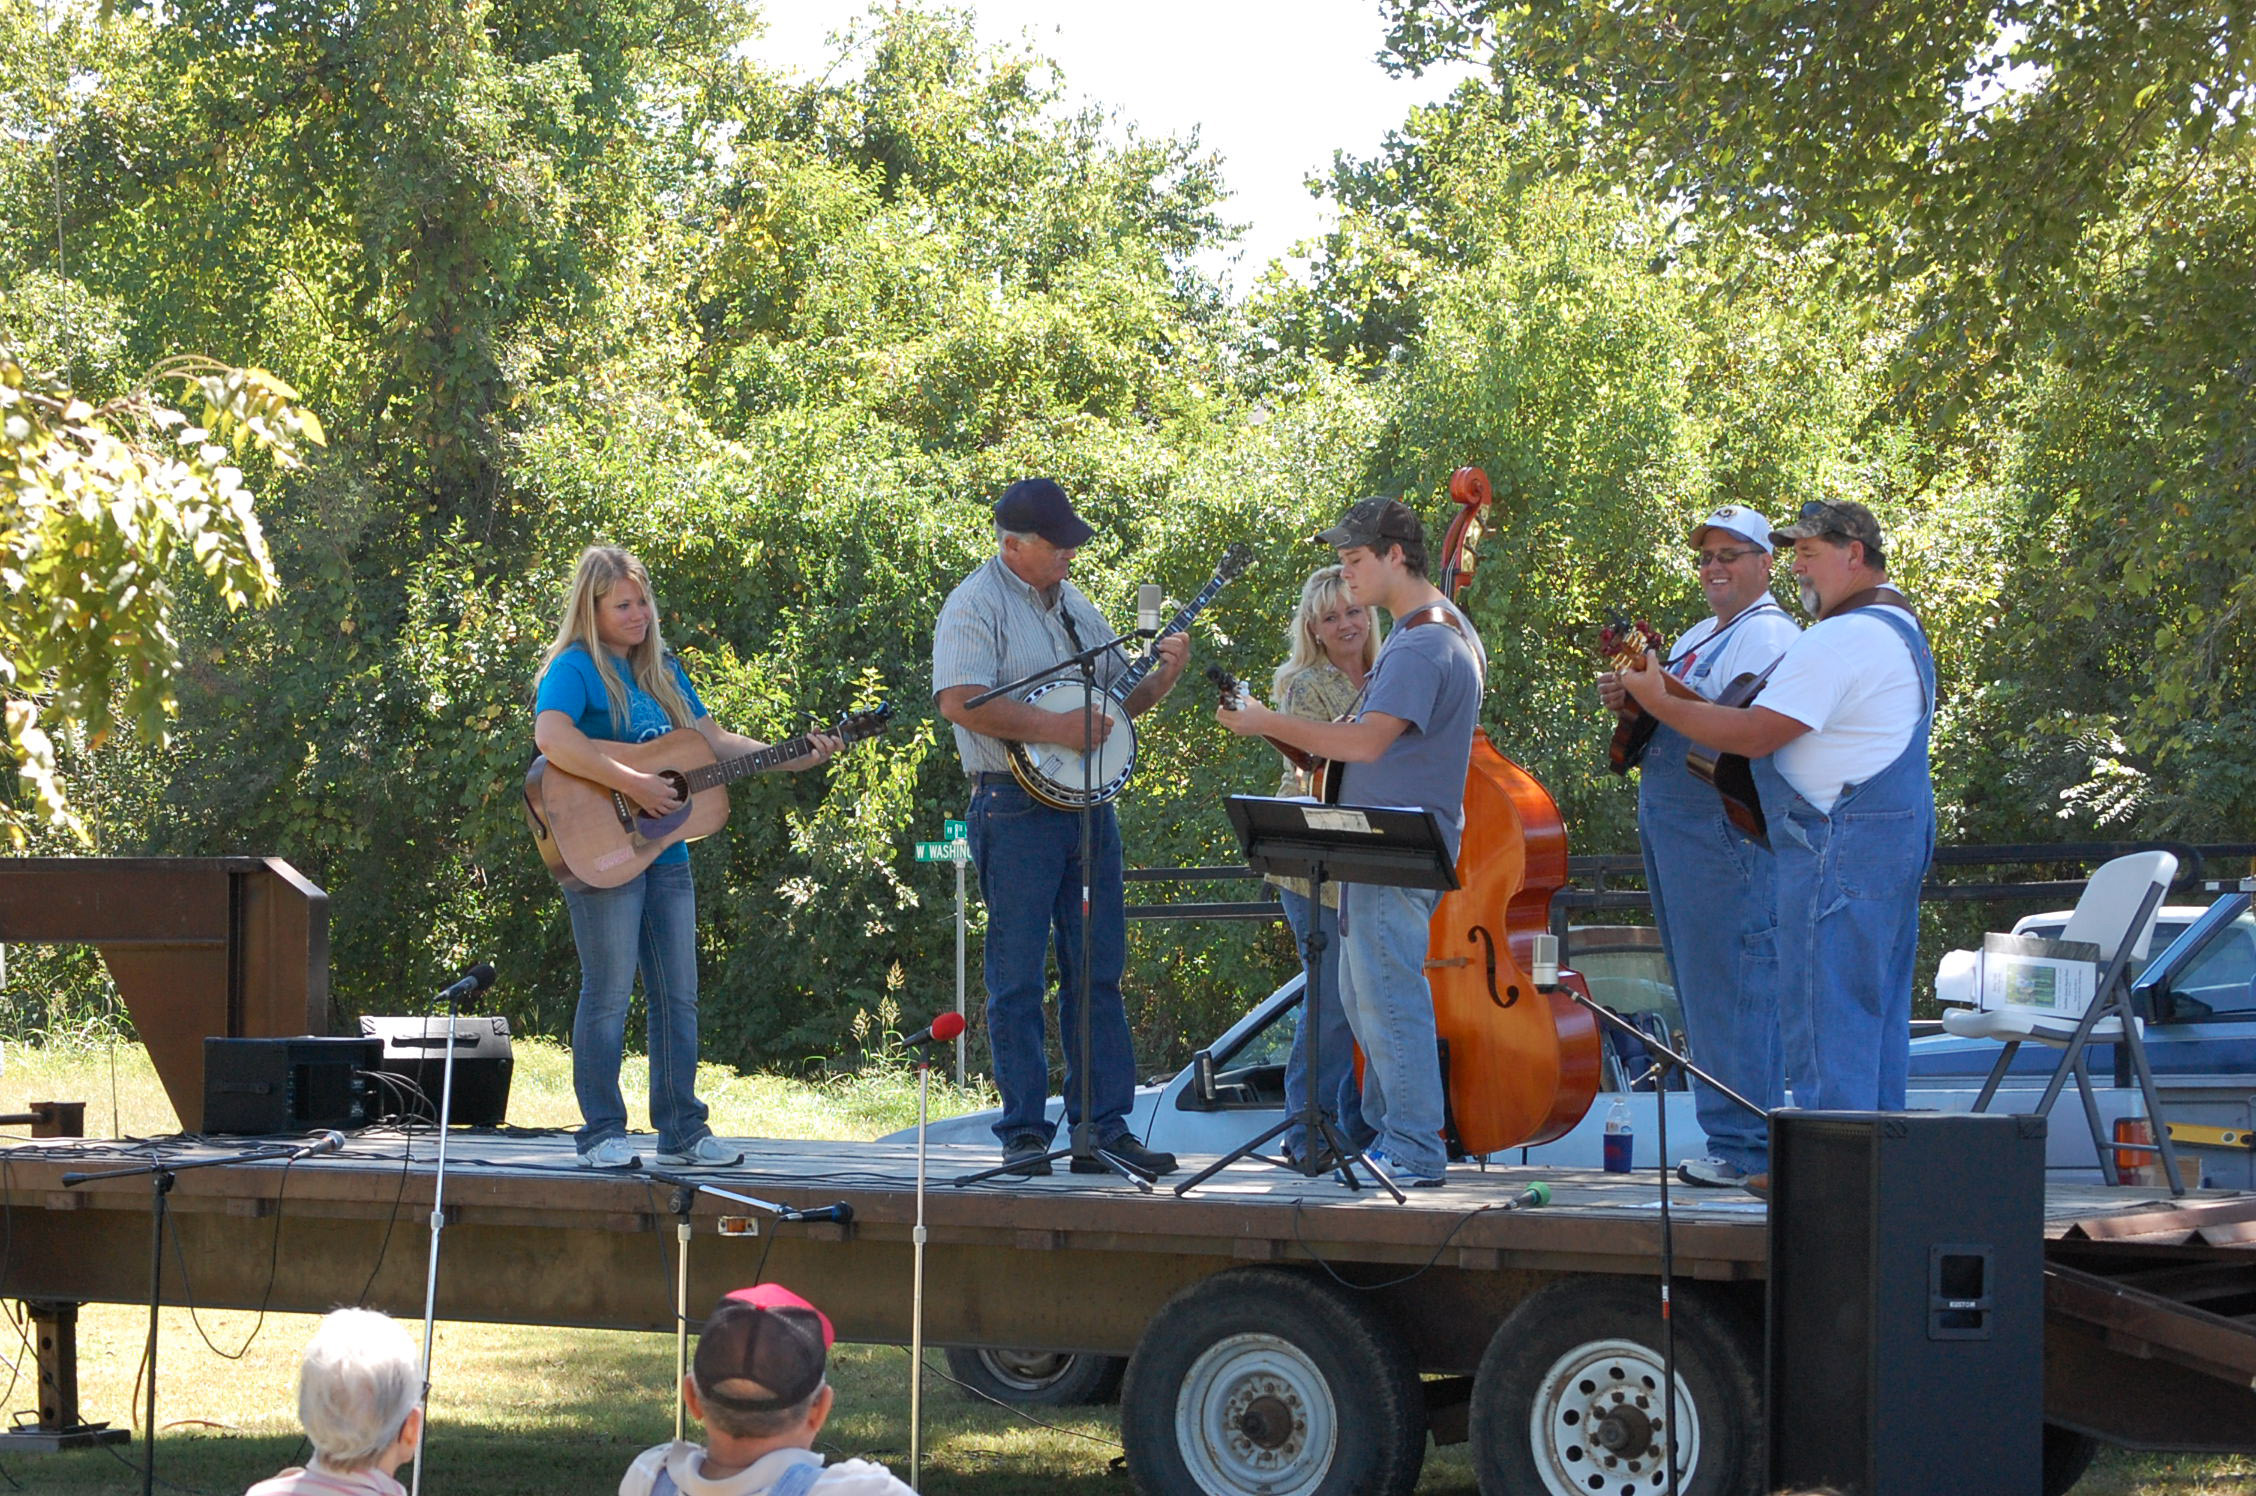 """Bluegrass and gospel music in the park was part of Option Pregnancy Center's """"A Day In the Park"""" program on Saturday, Sept. 14."""